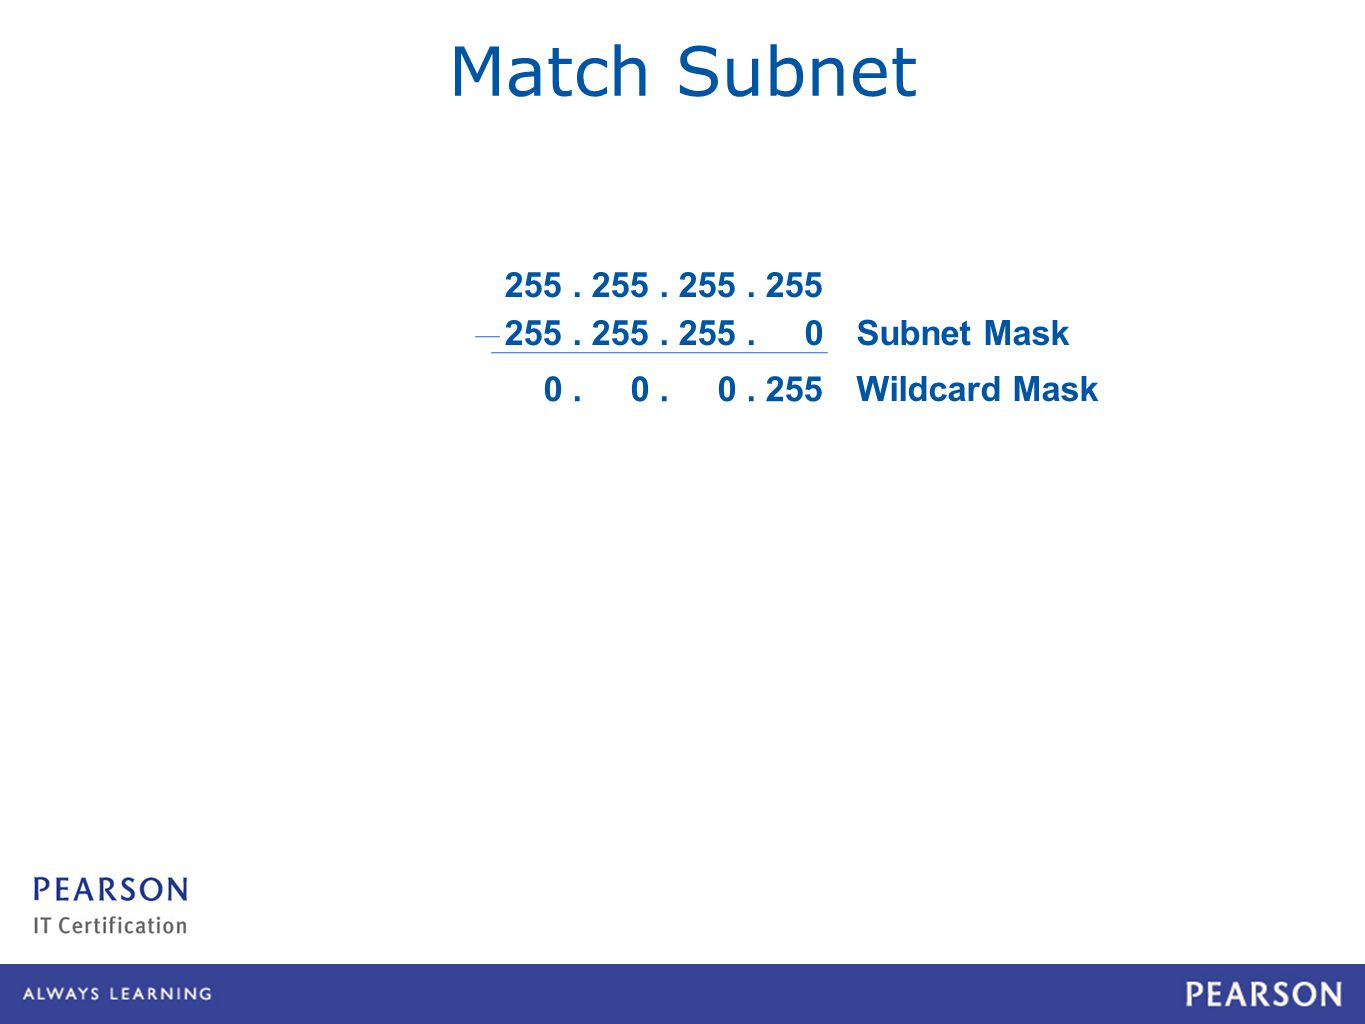 Match Subnet Wildcard Mask Subnet Mask